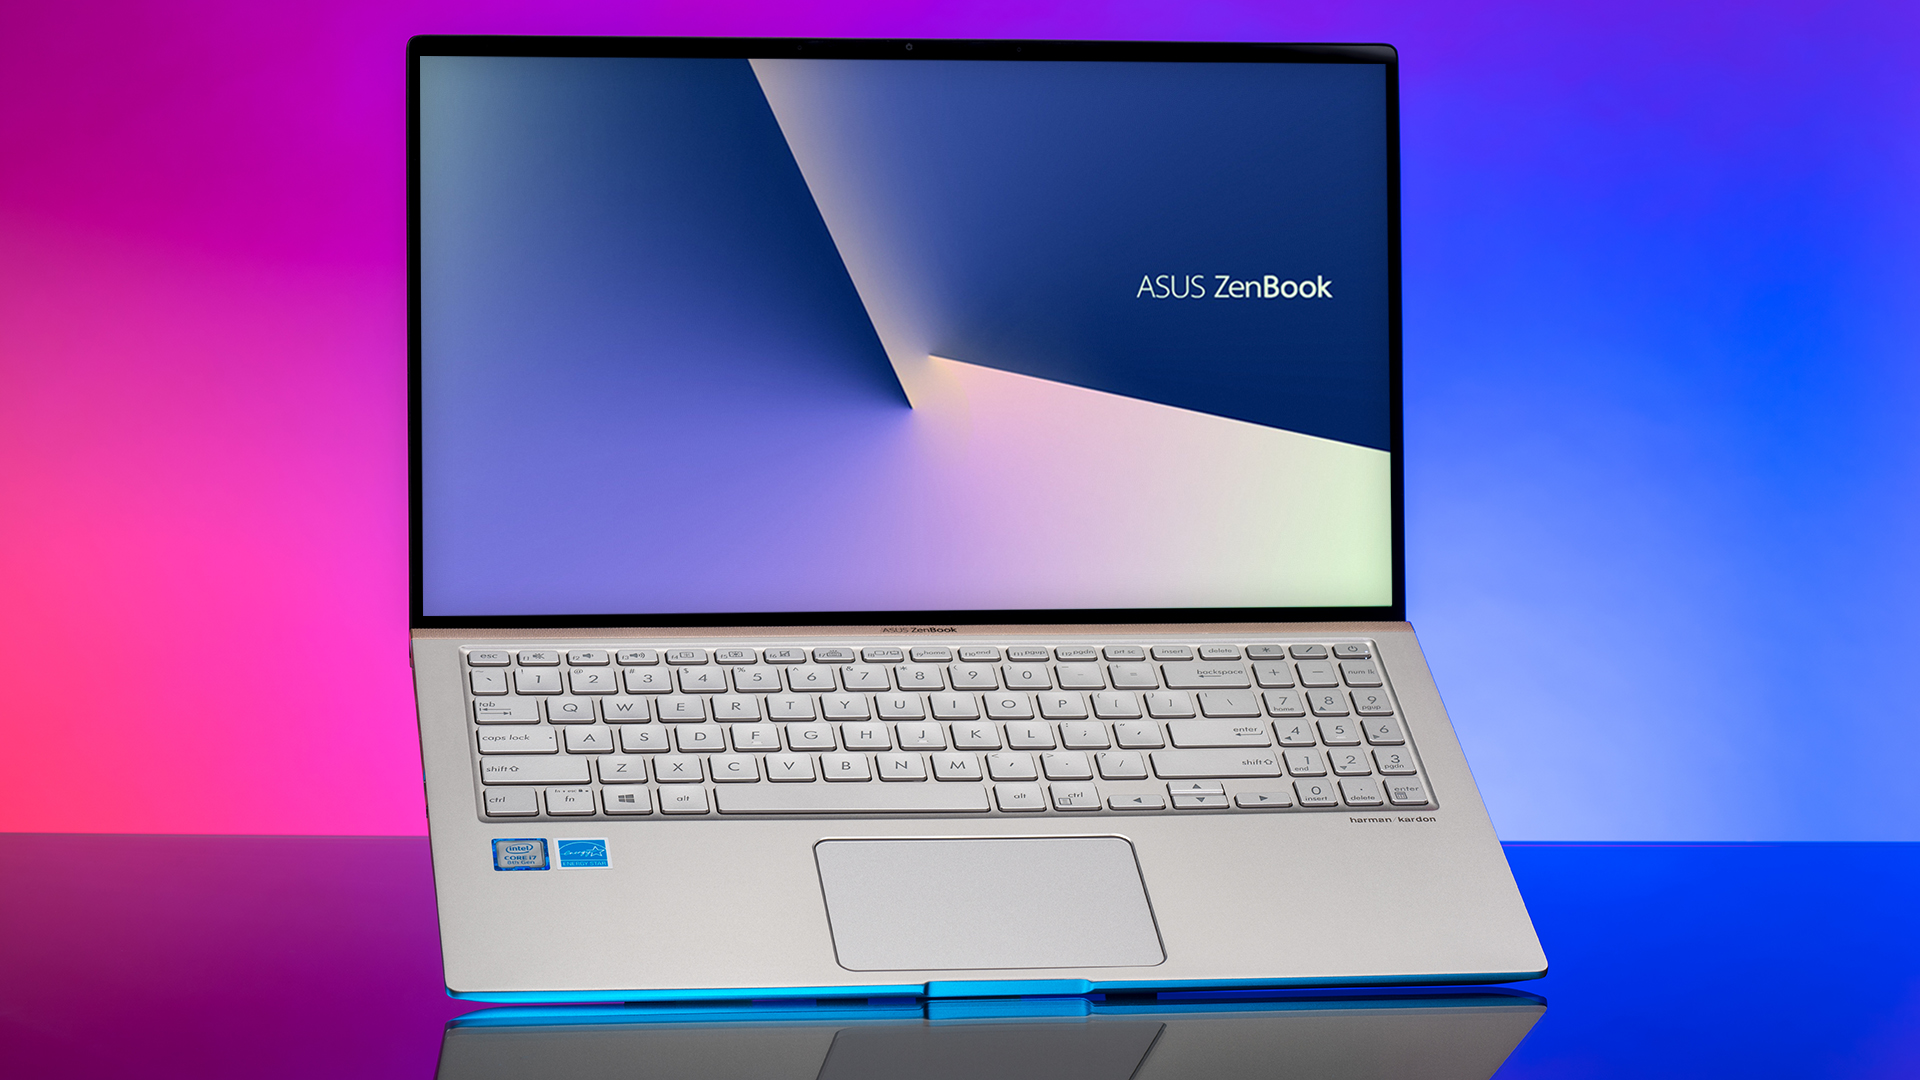 ASUS ZenBook 15 Ultra-Slim Compact Laptop with Intel Core I7